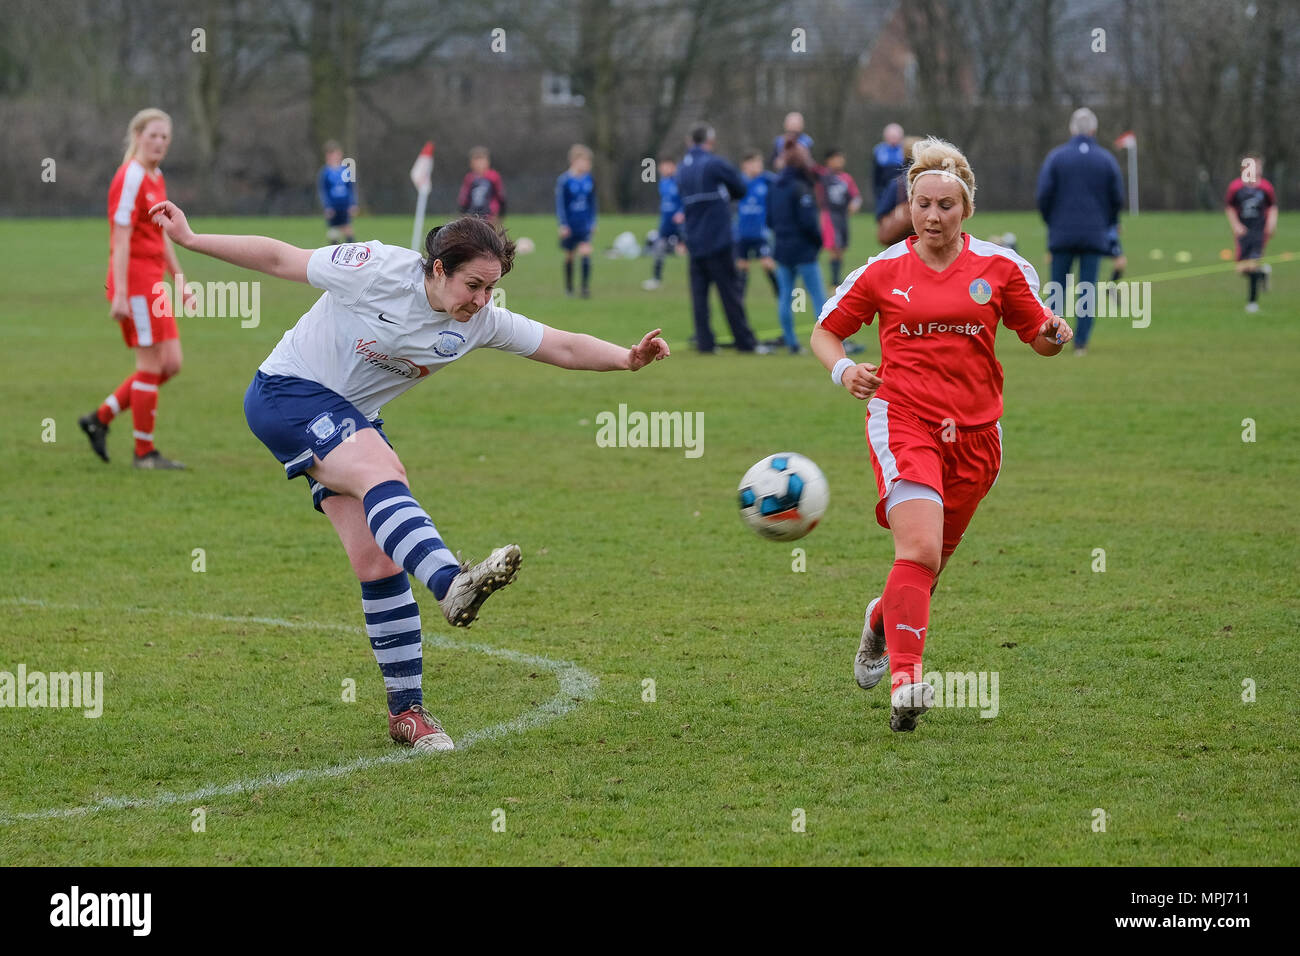 Female soccer in the North West Women's Regional League as Preston North End Ladies take on Penrith Ladies - Stock Image